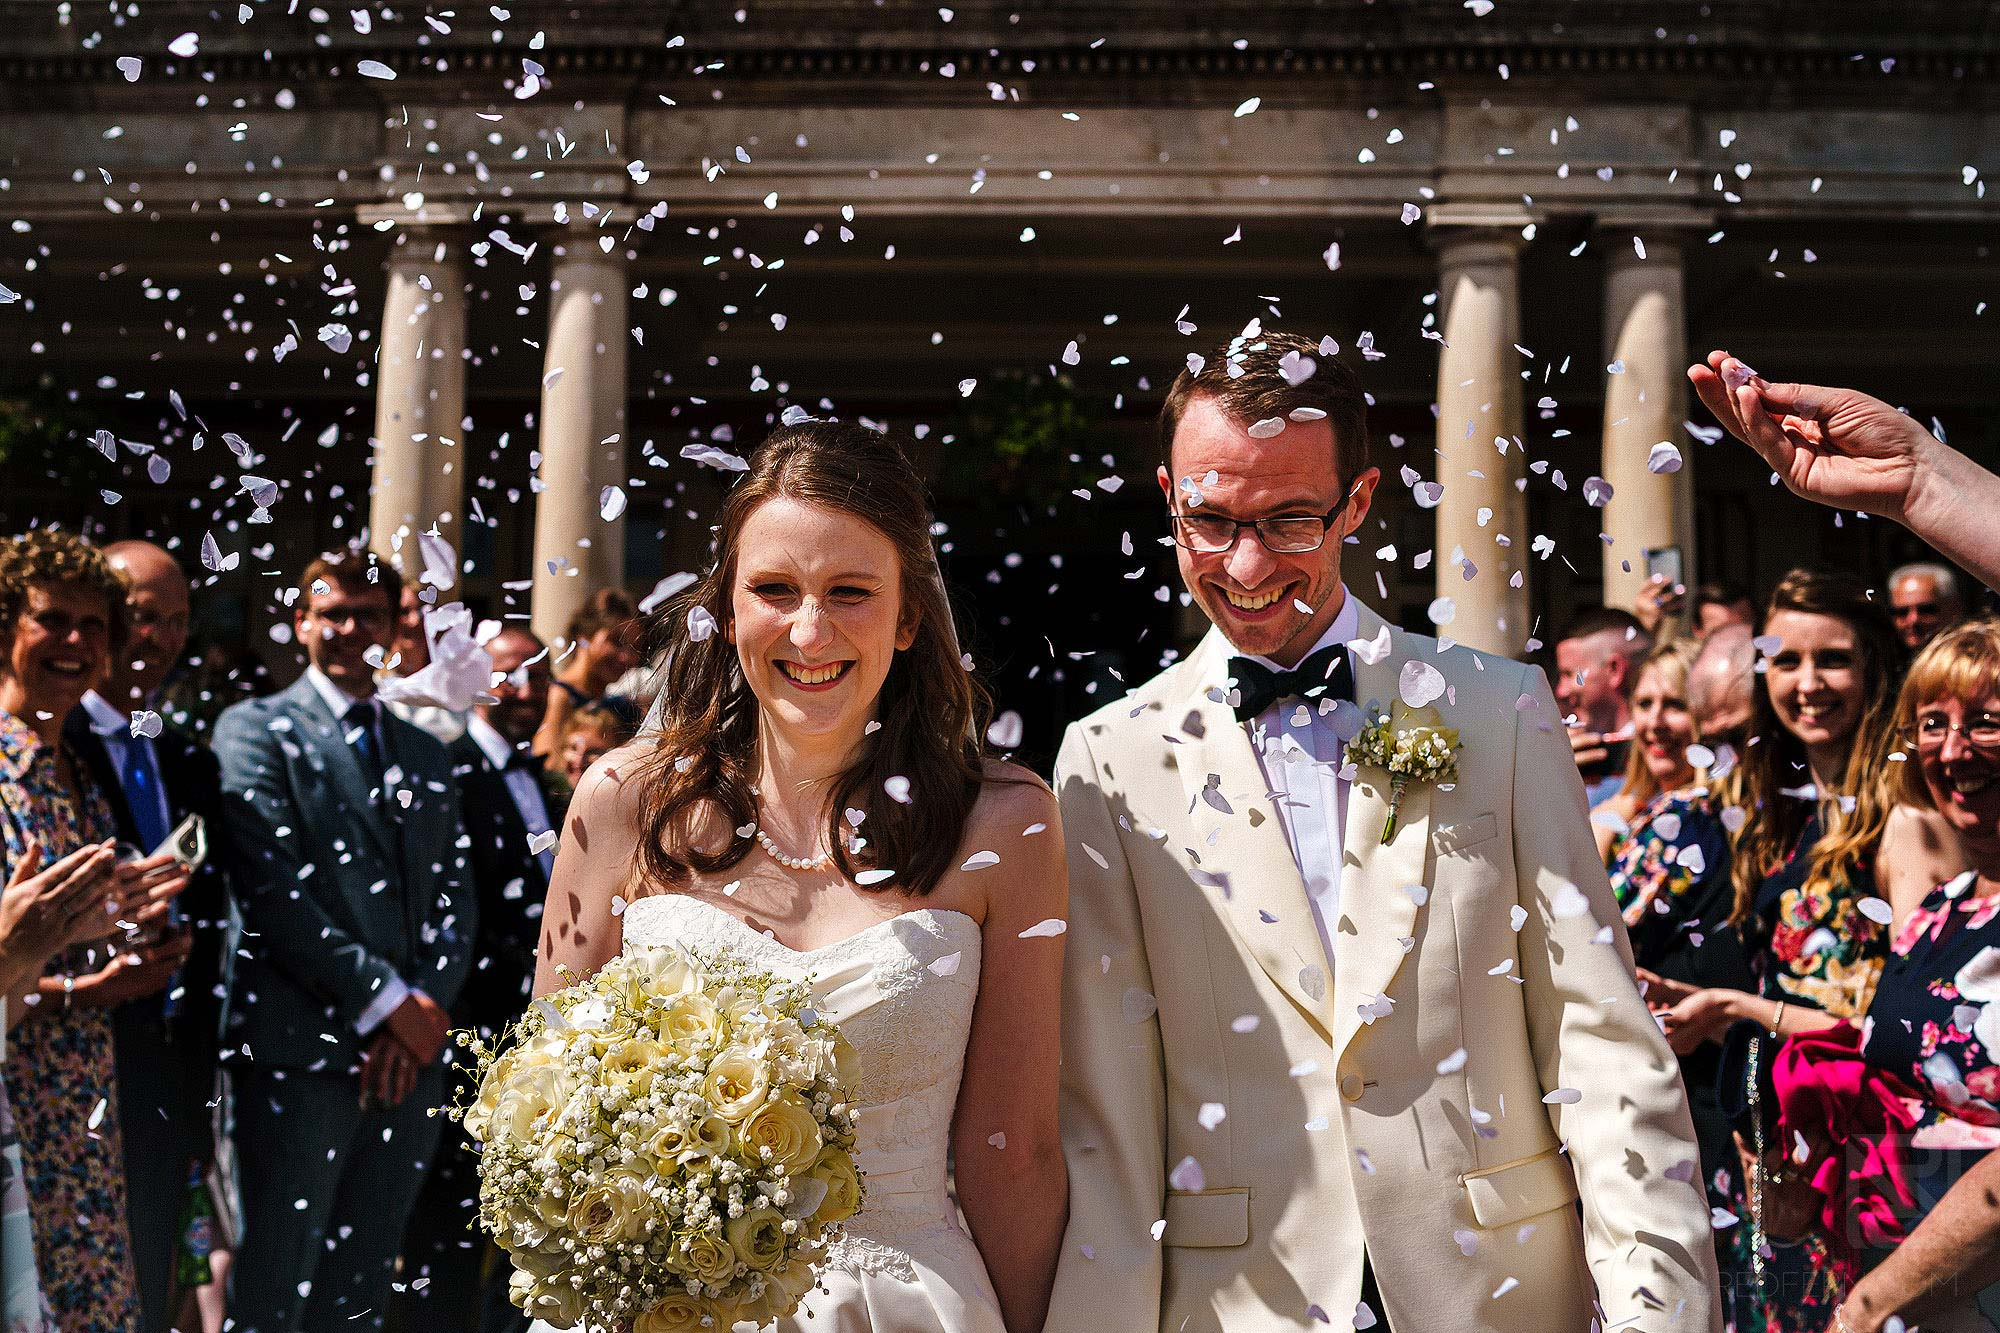 newlyweds walking through confetti